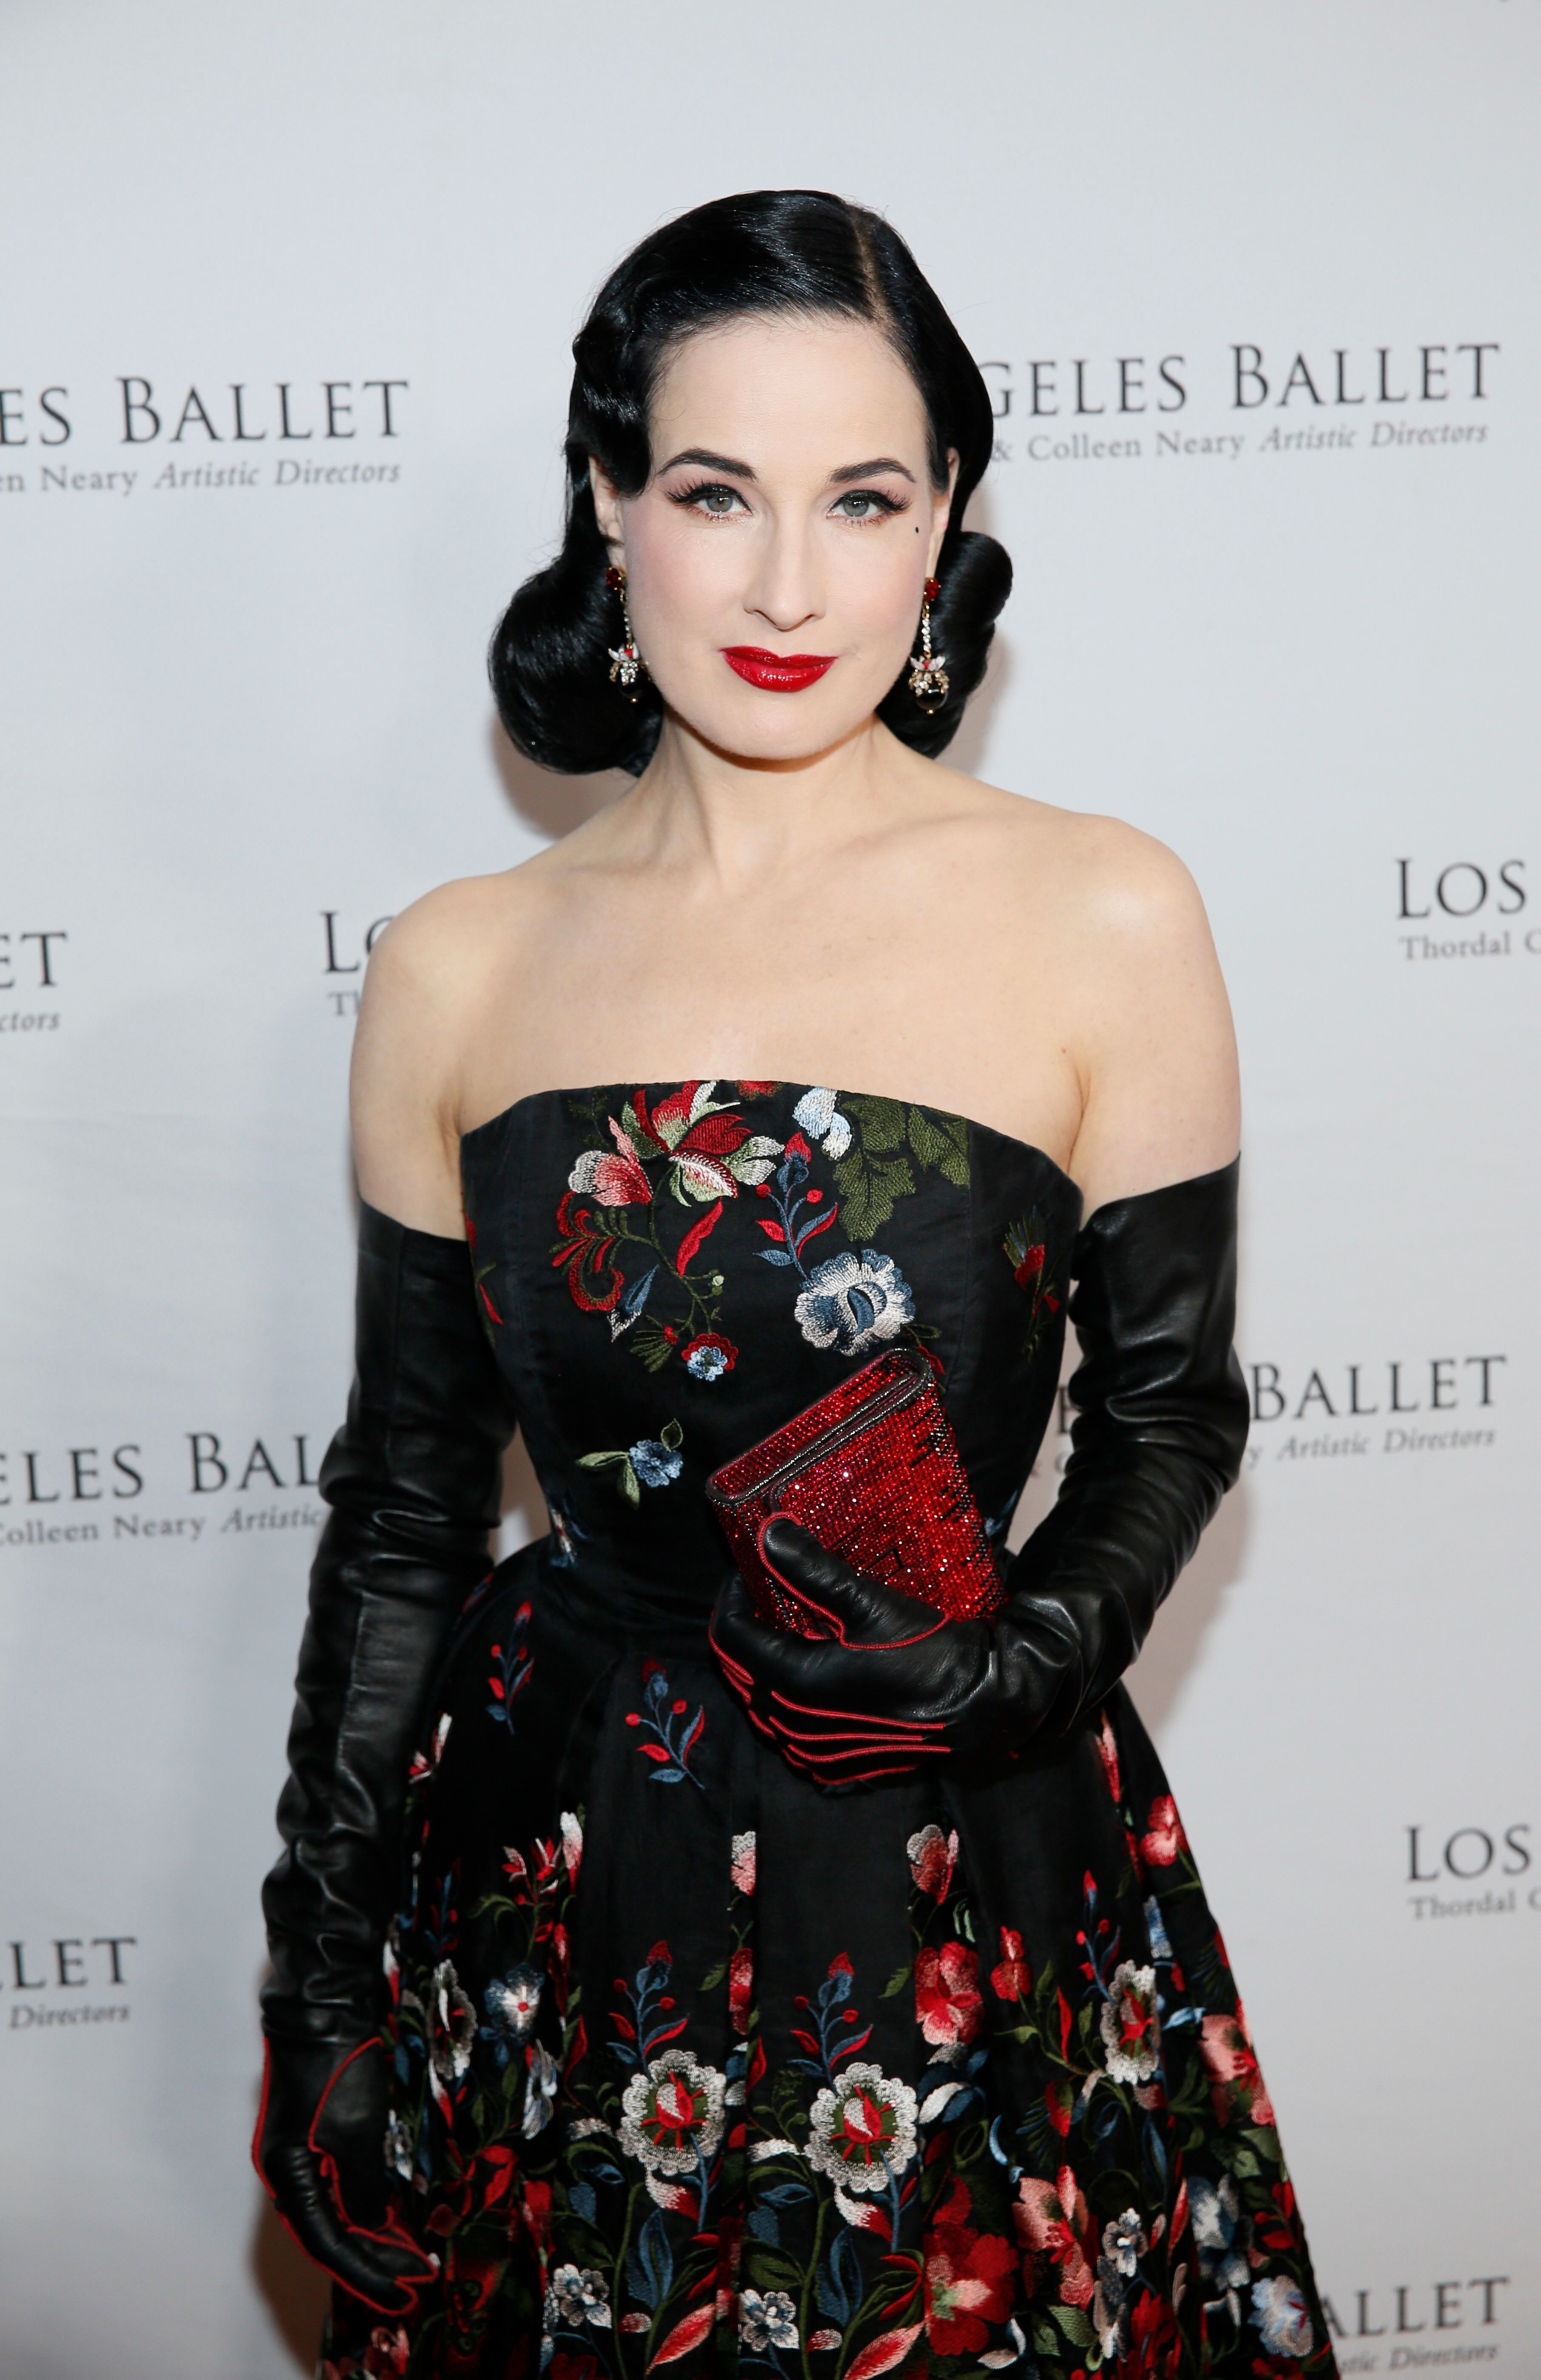 Dita Von Teese attends the Los Angeles Ballet Gala in Los Angeles on April 11, 2019.